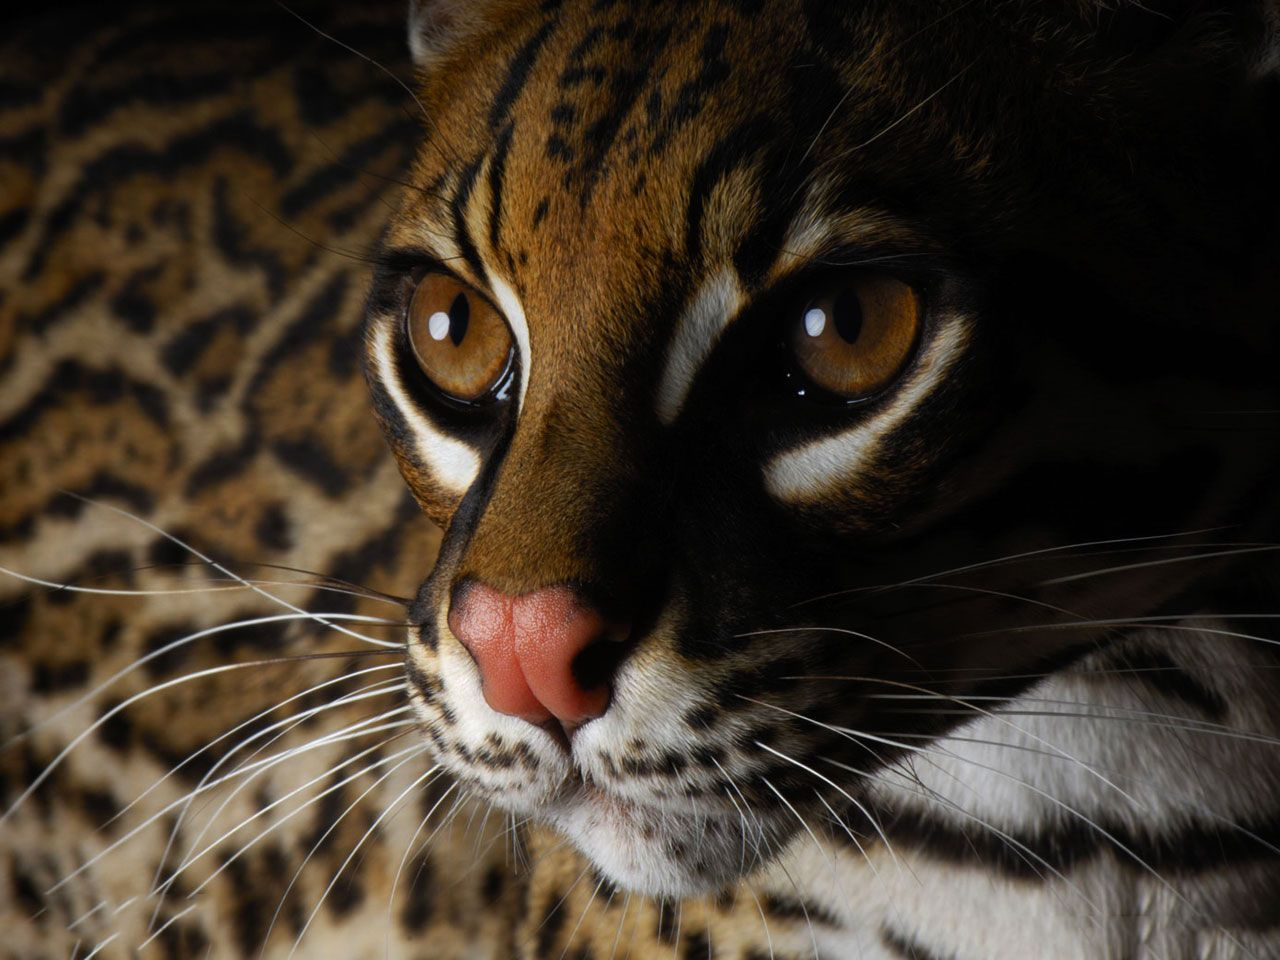 Jungle Cat Wild animal wallpaper, Animals beautiful